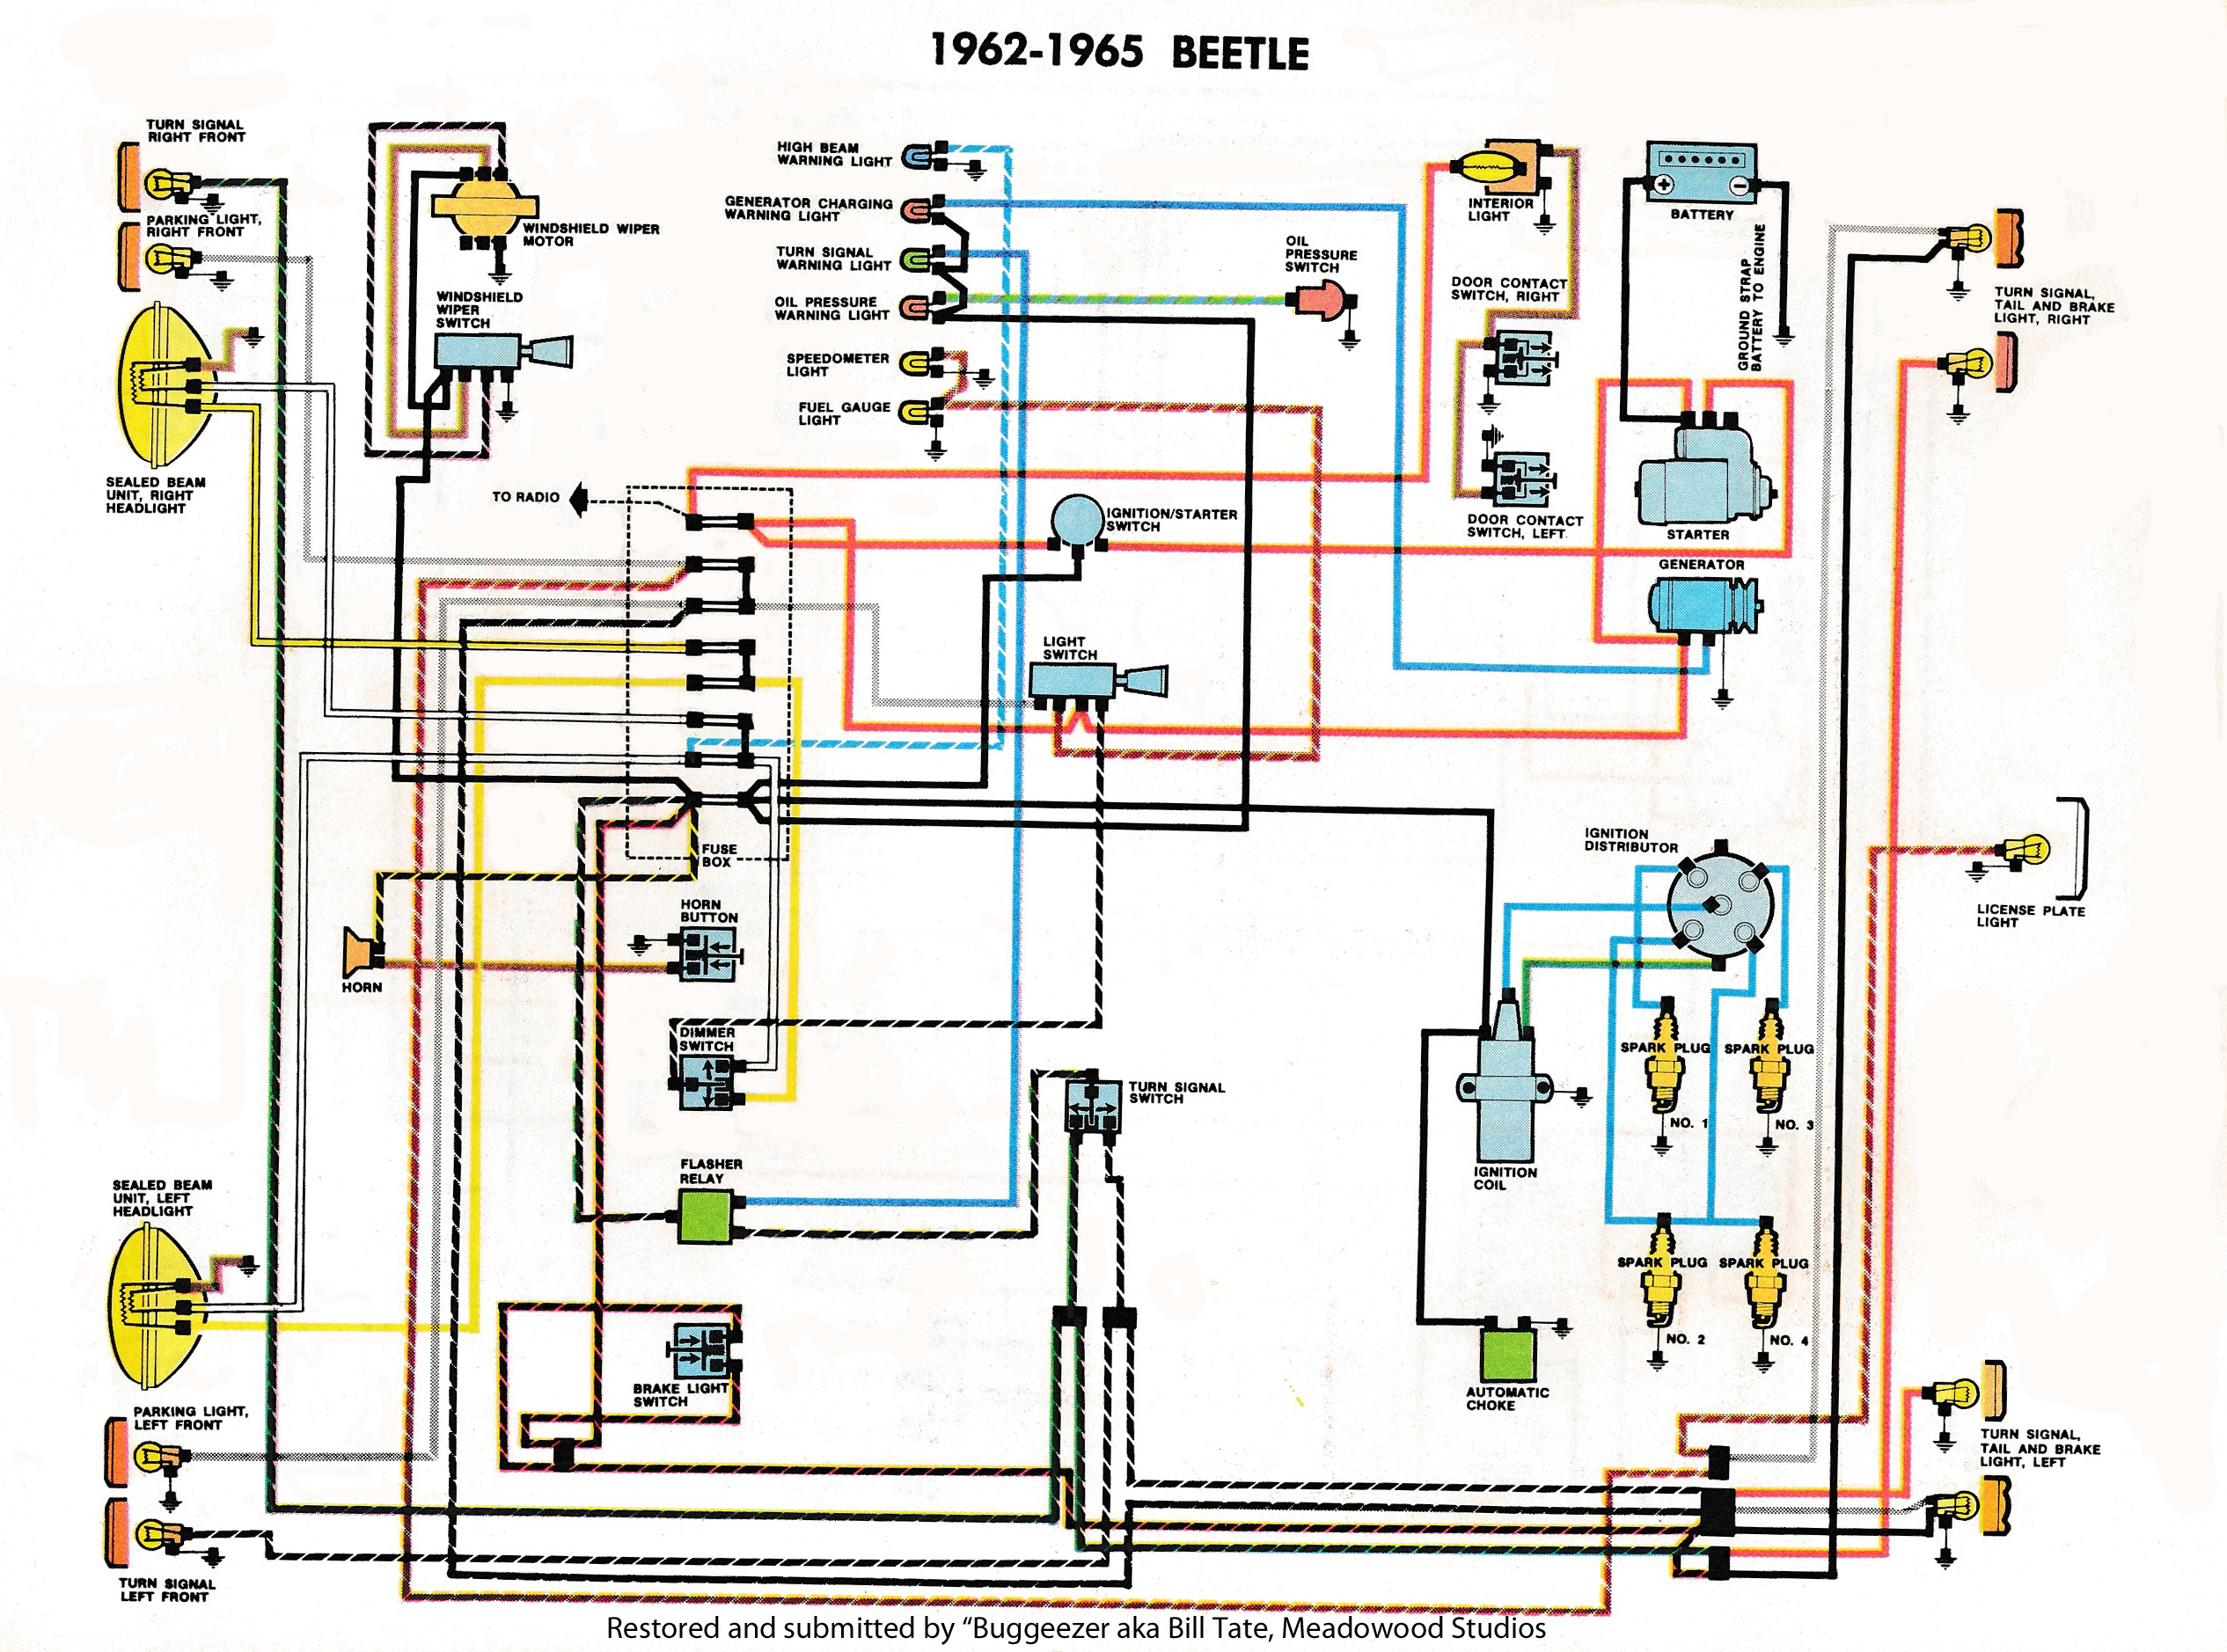 [DIAGRAM_38IS]  1951 Ford Headlight Switch Wiring Diagram Wiring Diagram 1987 Suzuki  Samurai - bengkenang.sardaracomunitaospitale.it | 2106 Ford Headlight Wiring Diagram |  | Wiring Diagram and Schematics